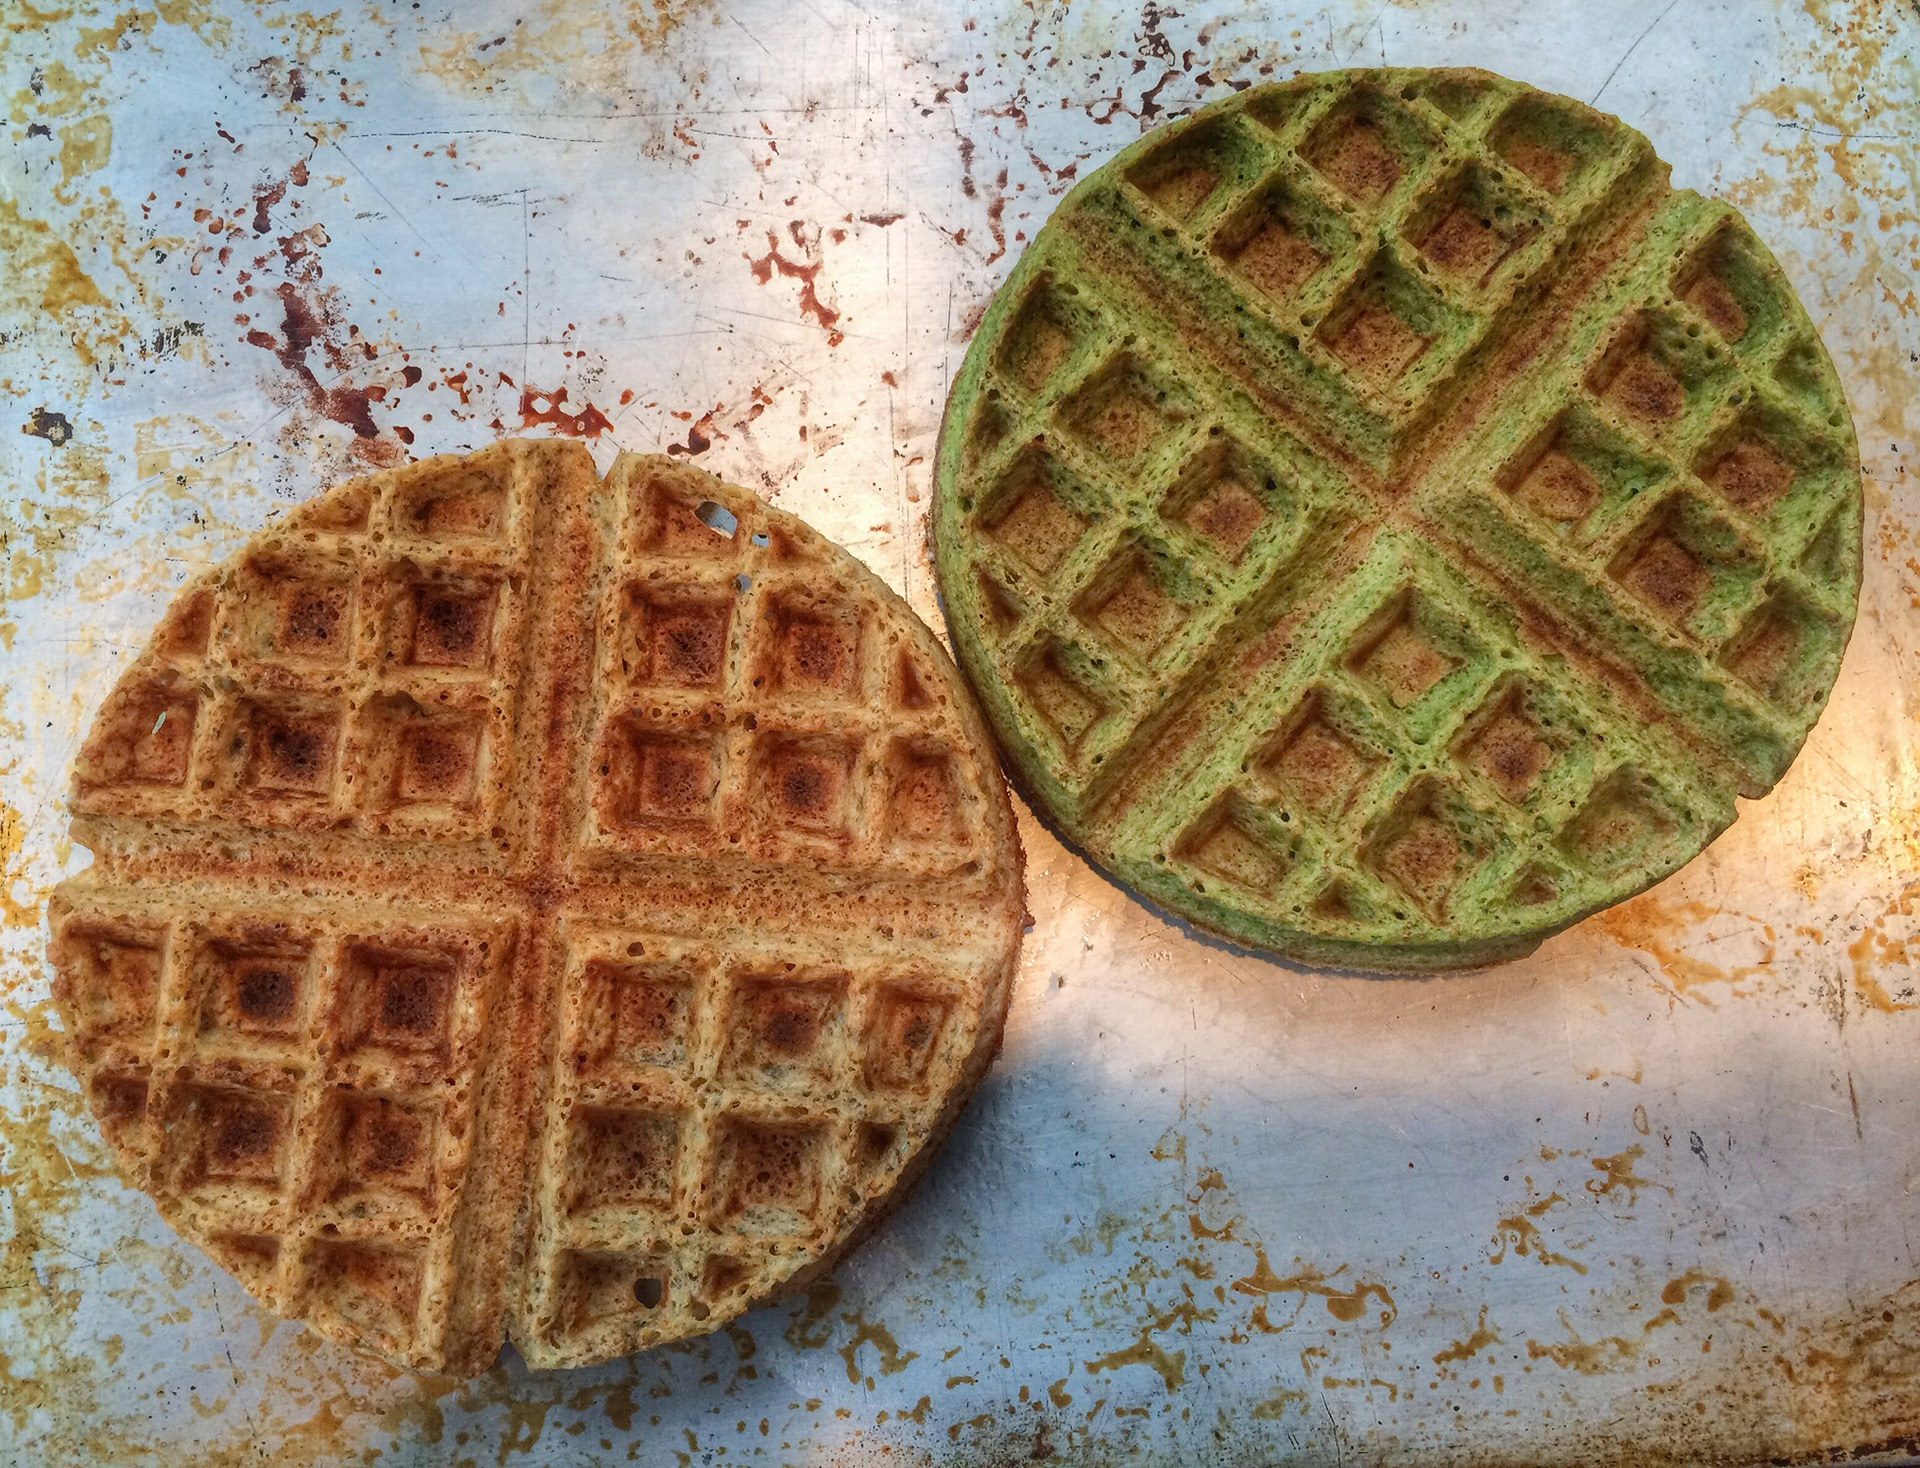 Green eggs and waffles: A recipe my grandmother would avoid